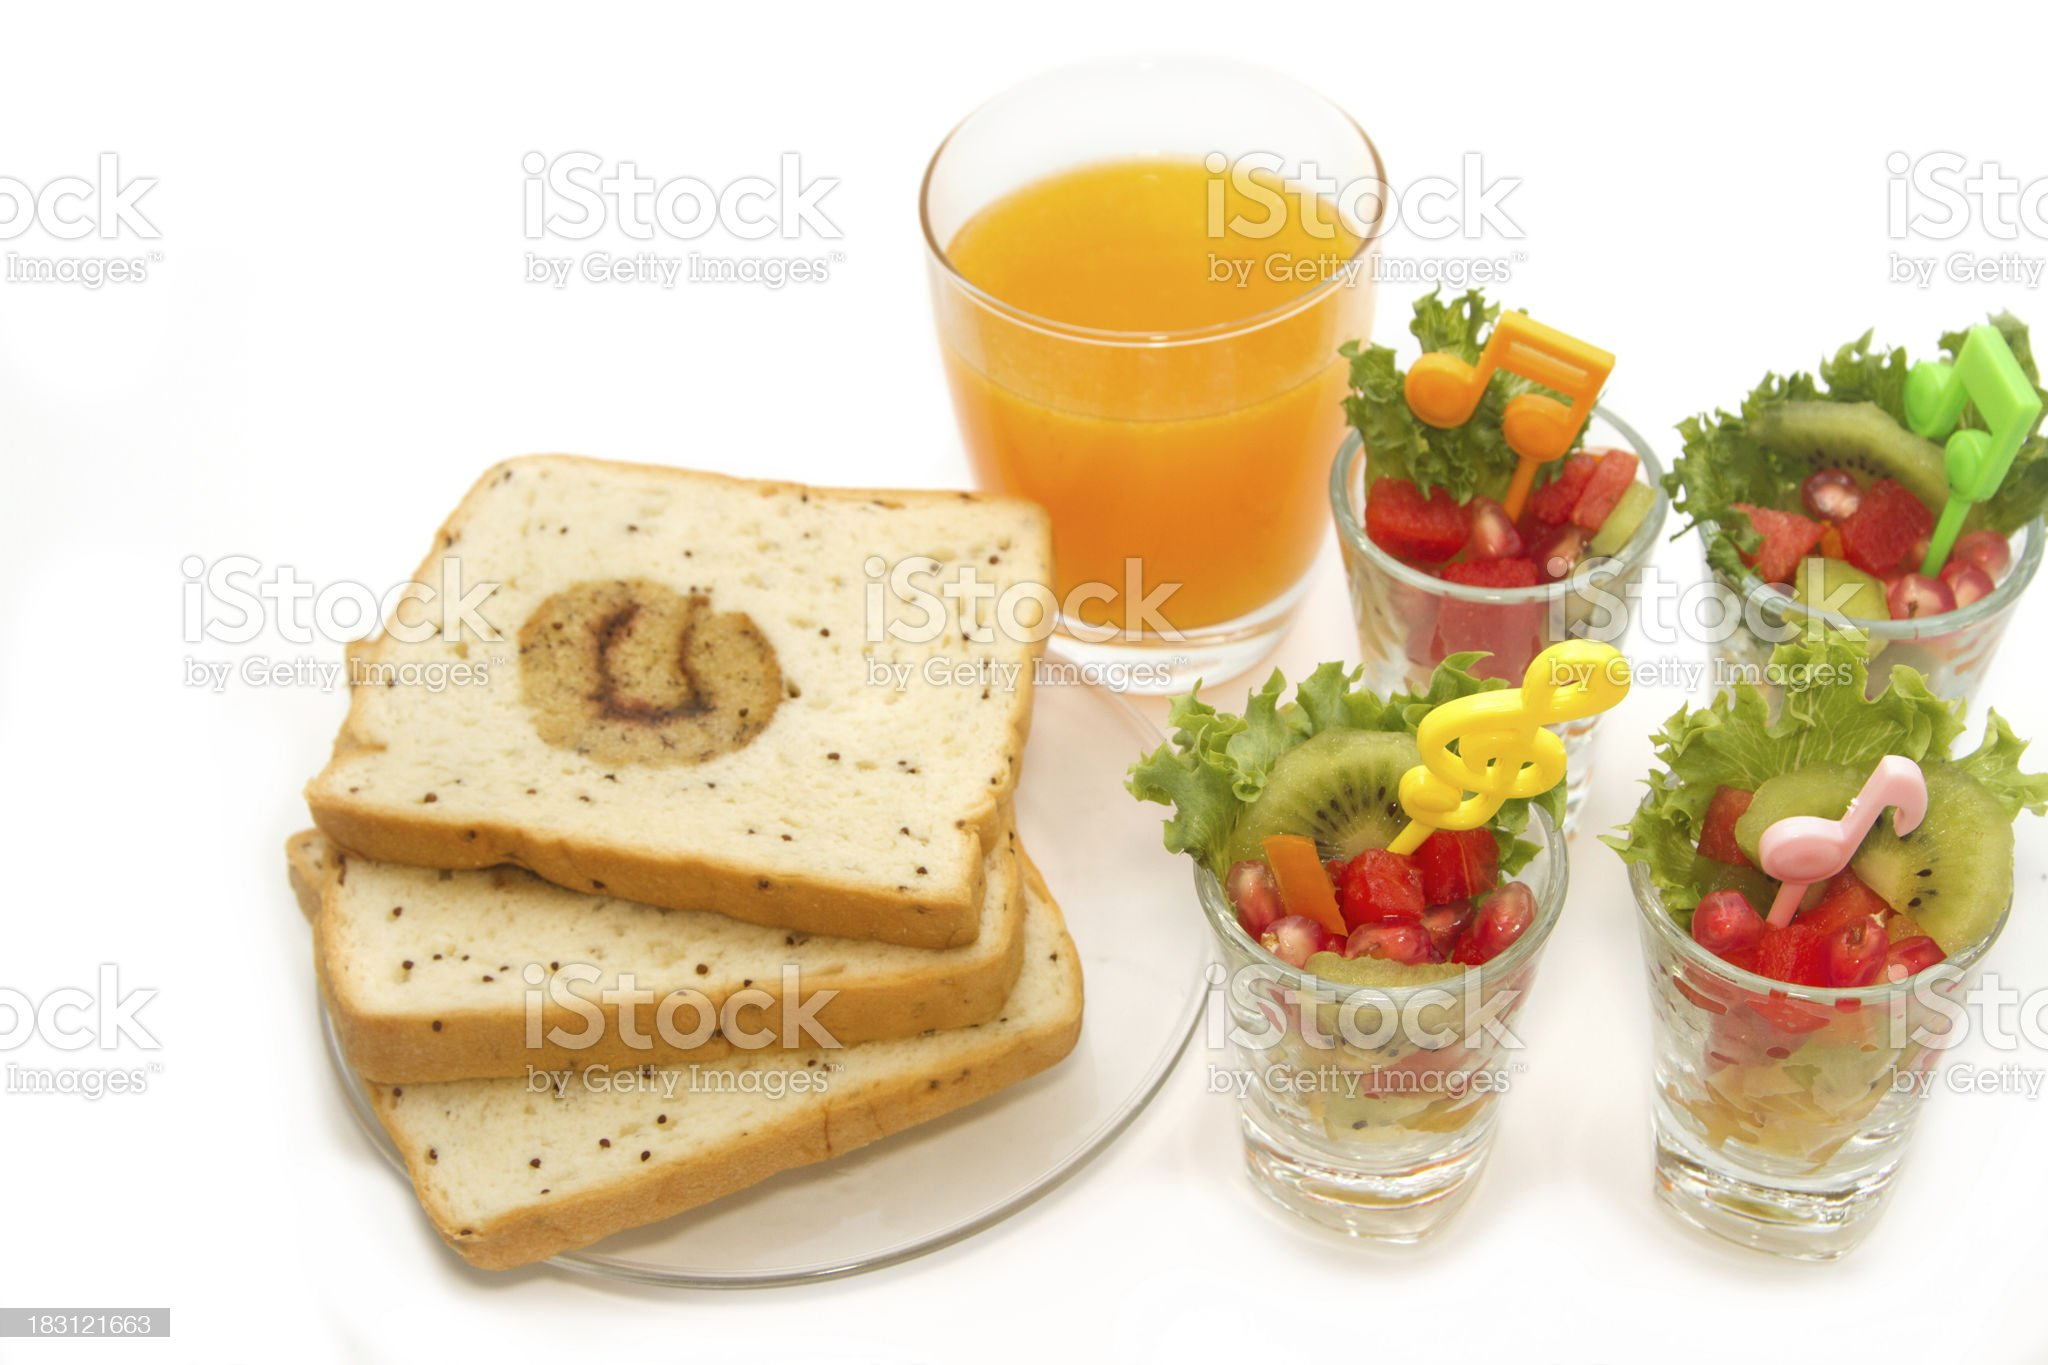 Fresh fruit salad with orange juice, fusion food for diet royalty-free stock photo